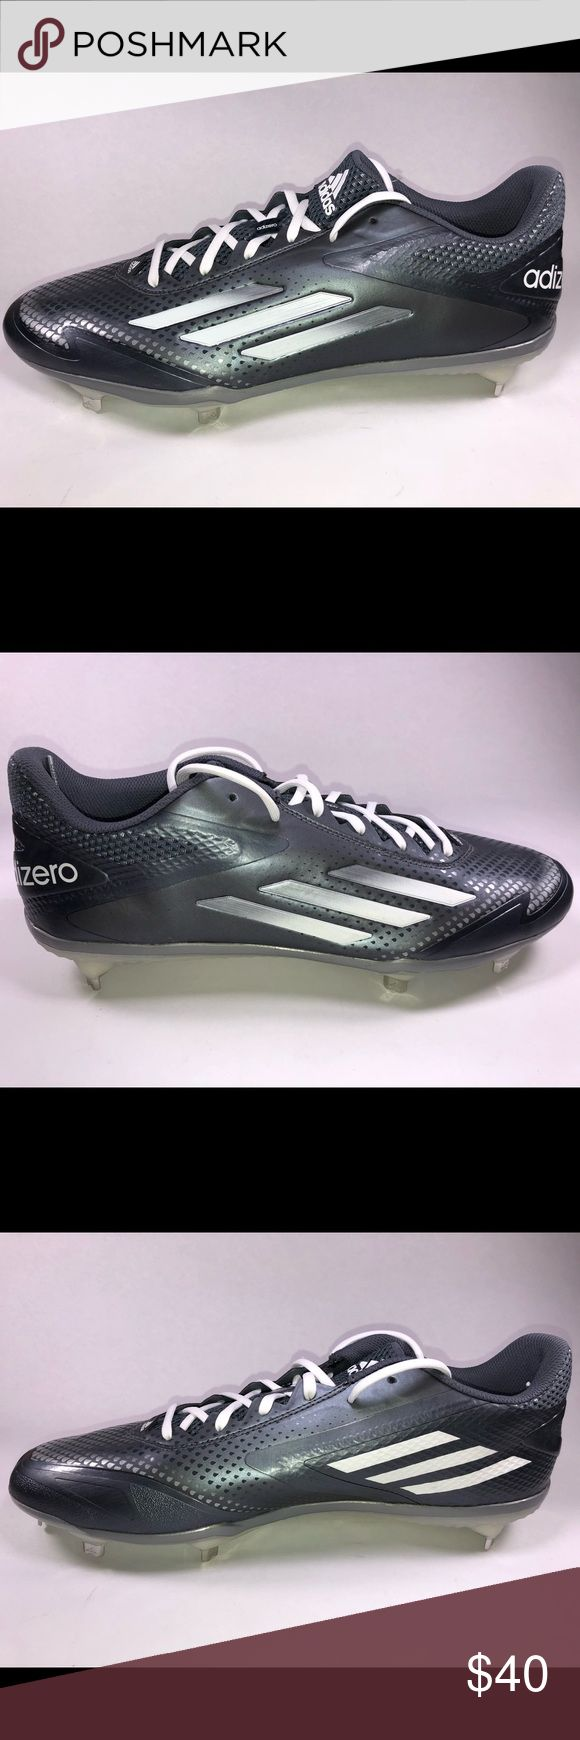 Adidas Adizero Afterburner 2.0 Metal Cleats New Without Box Never Been Worn See Pictures For Details (s846698) adidas Shoes Athletic Shoes